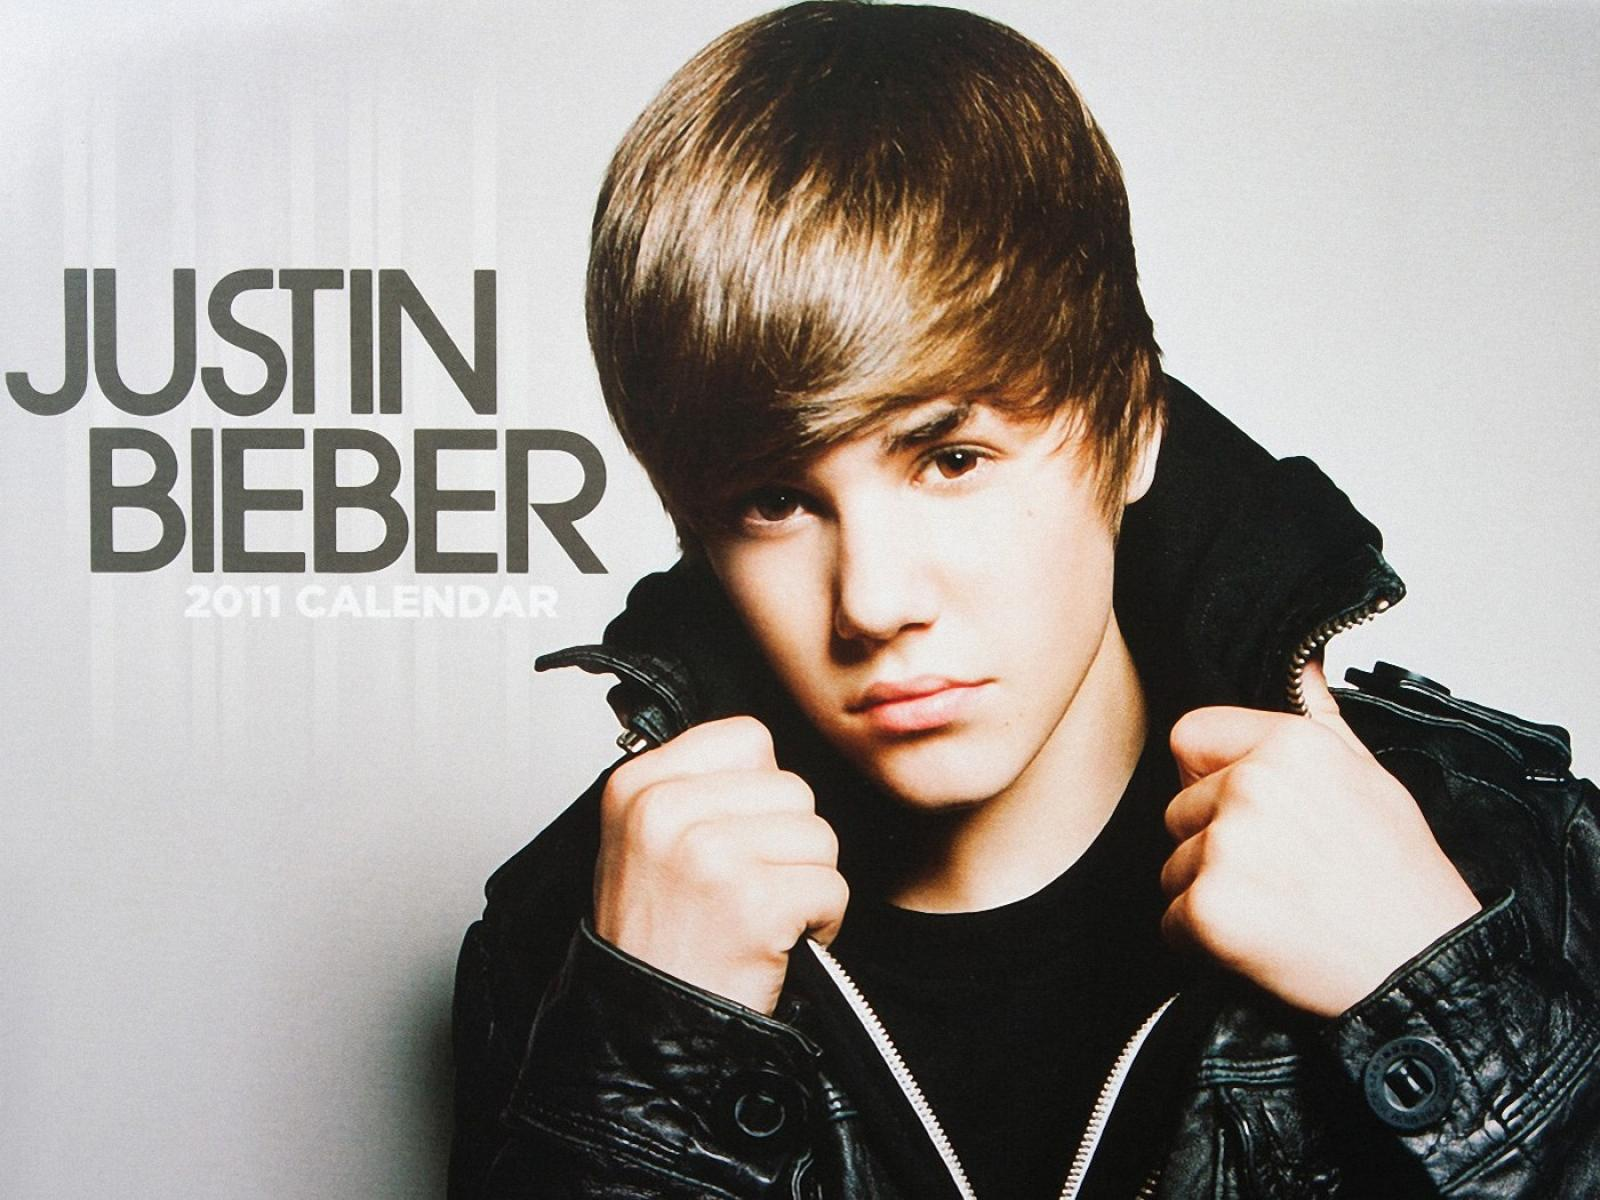 Justin Bieber Hd Wallpapers and Backgrounds